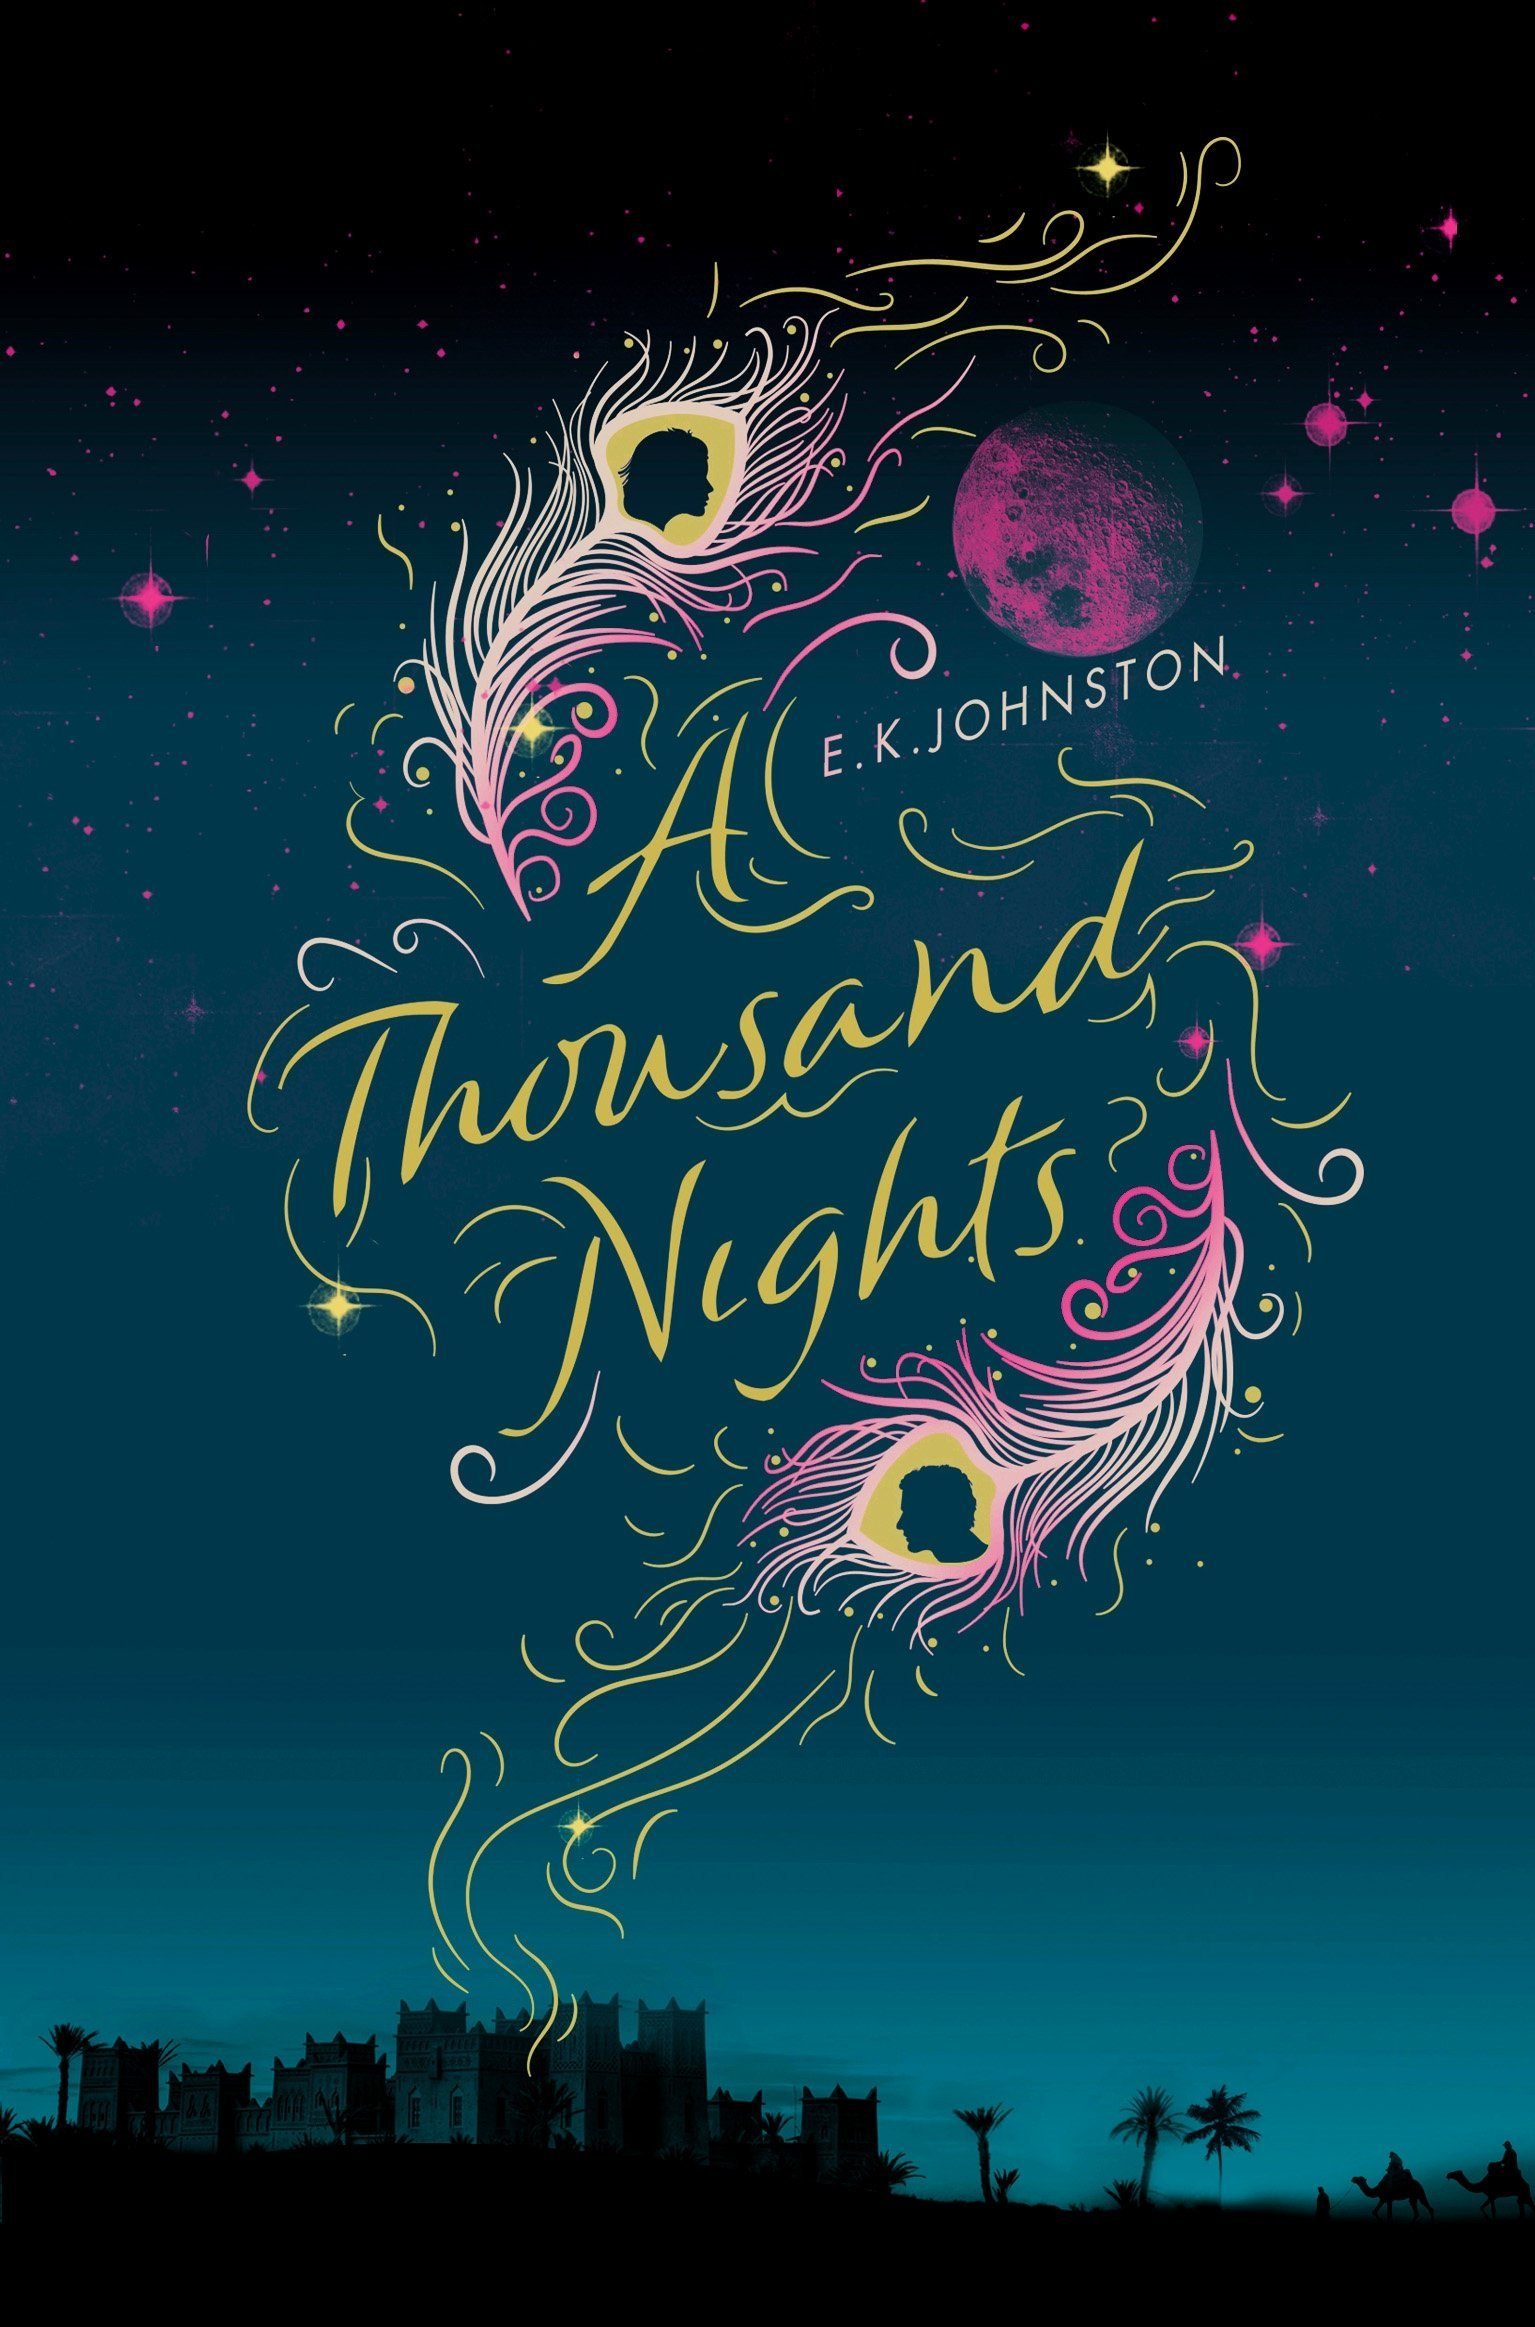 A Thousand Nights the night before easter